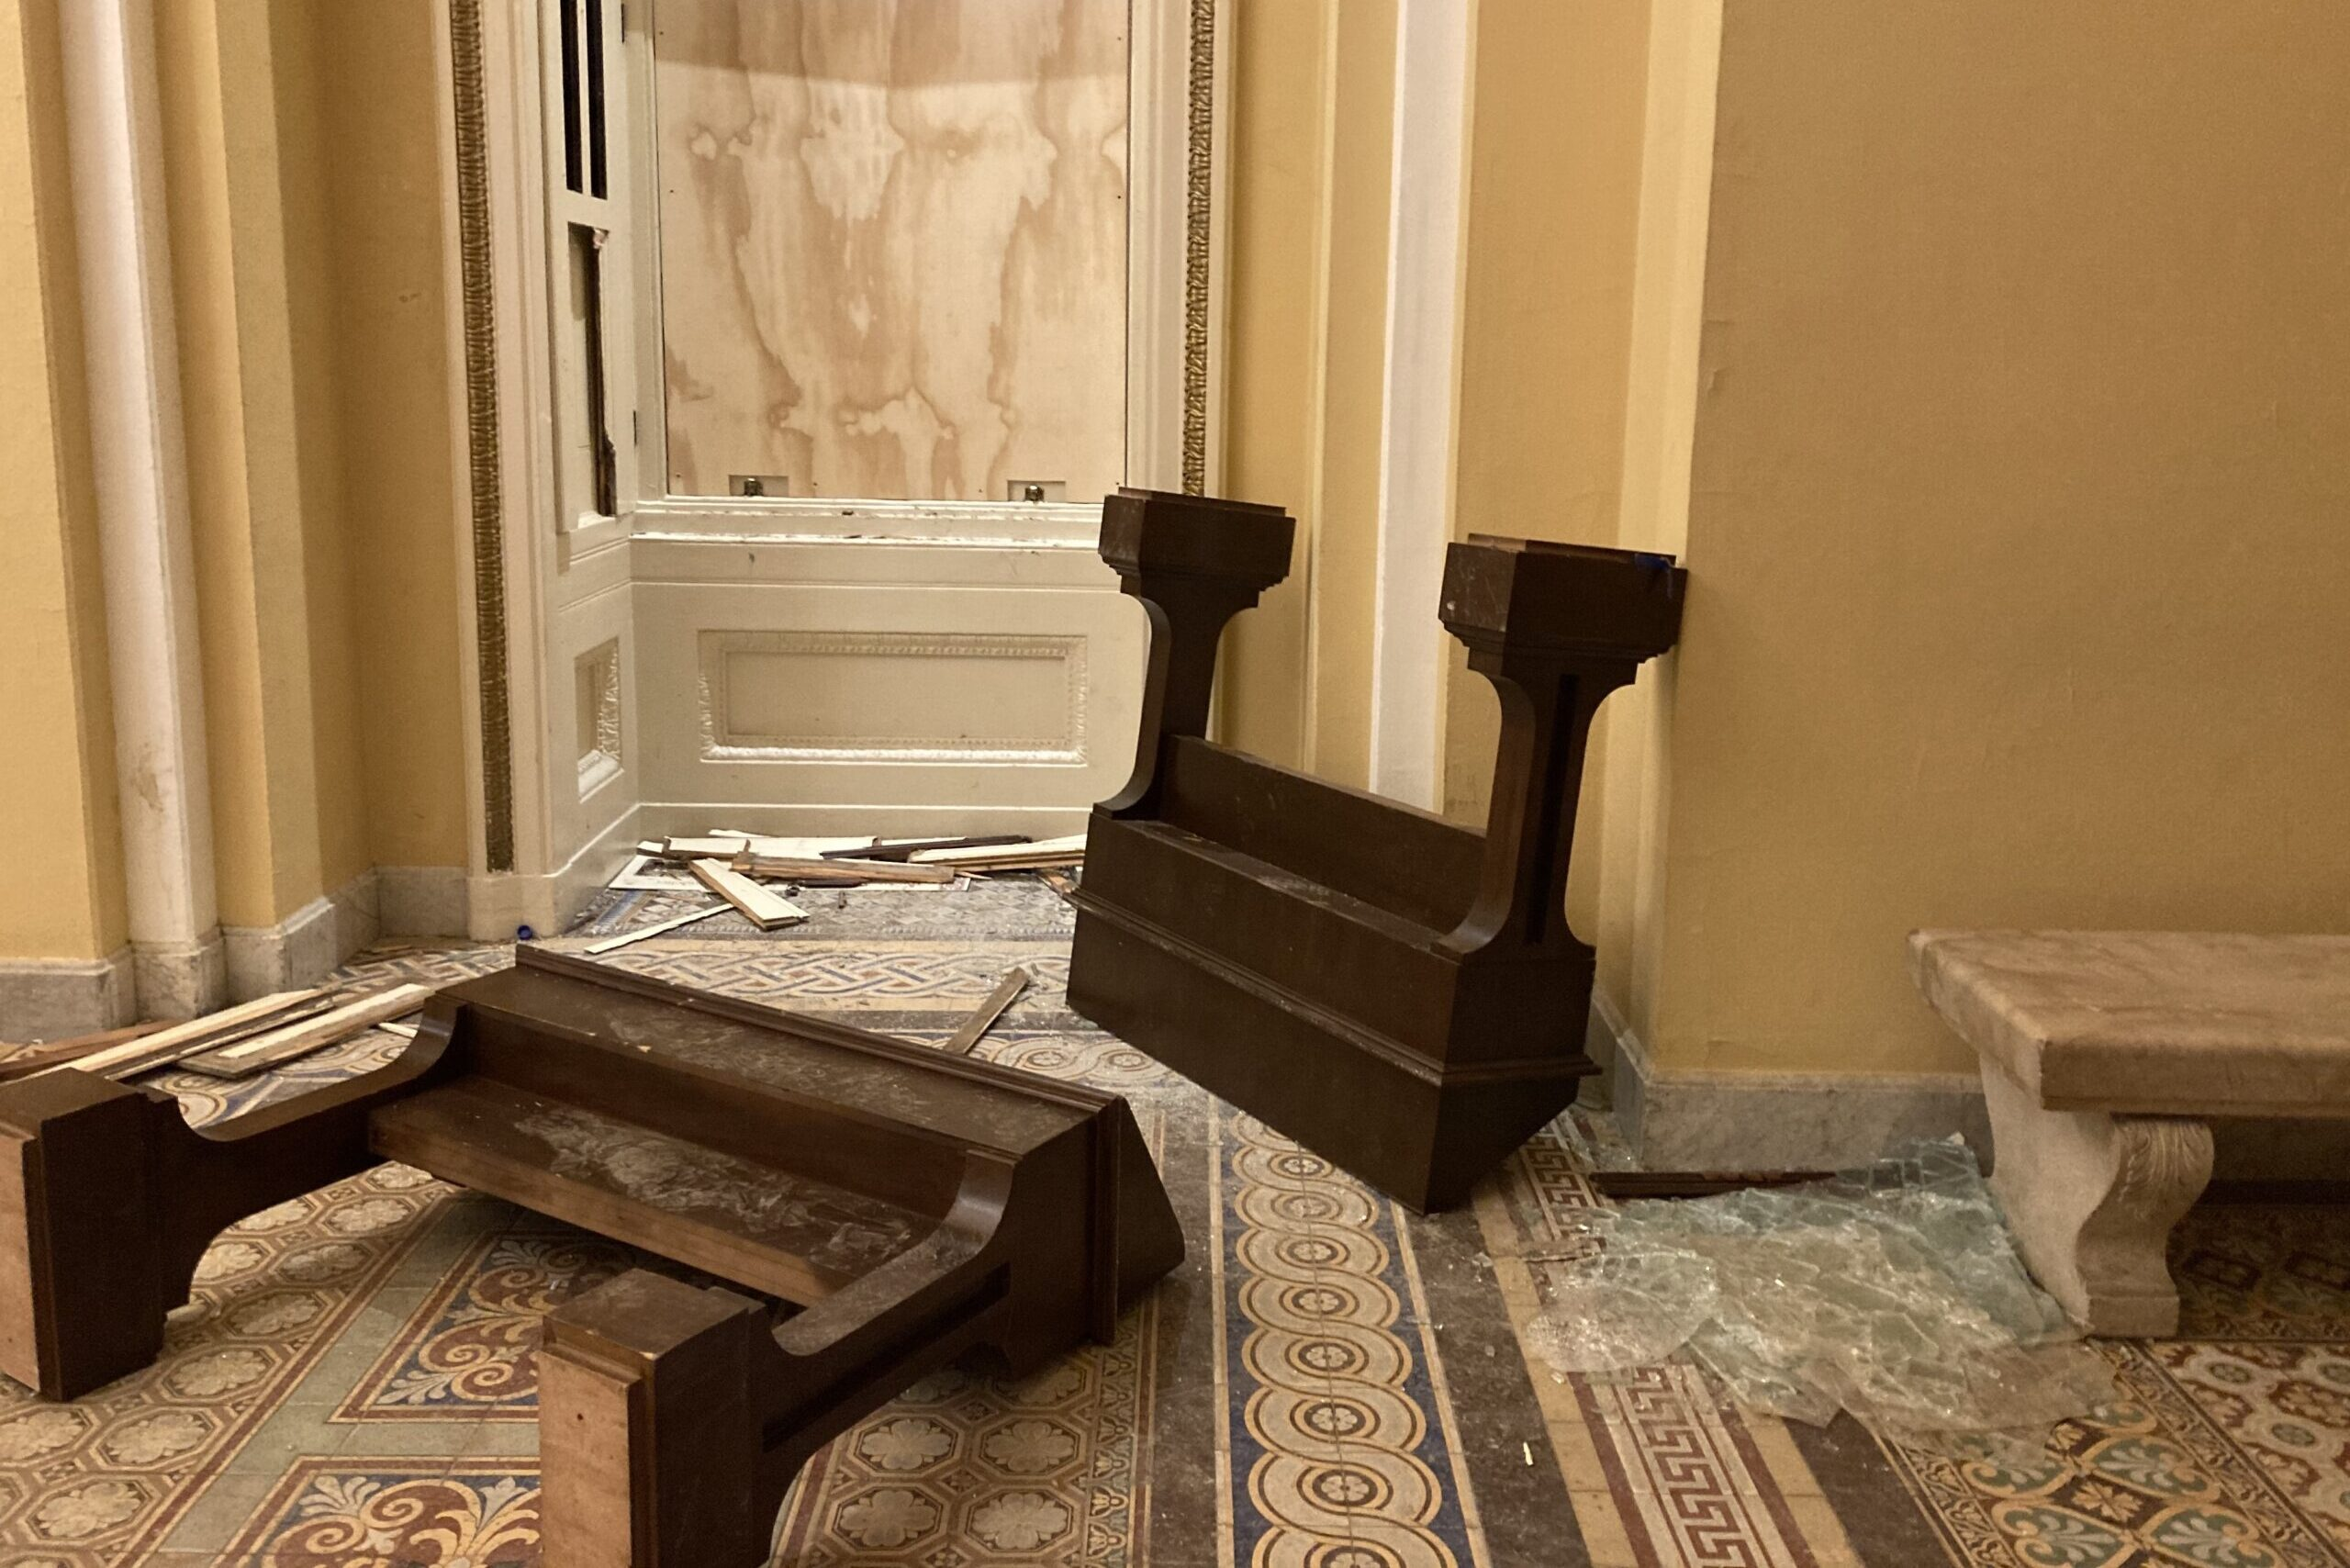 Damage inside the U.S. Capitol after rioters stormed the building on January 6, 2021.